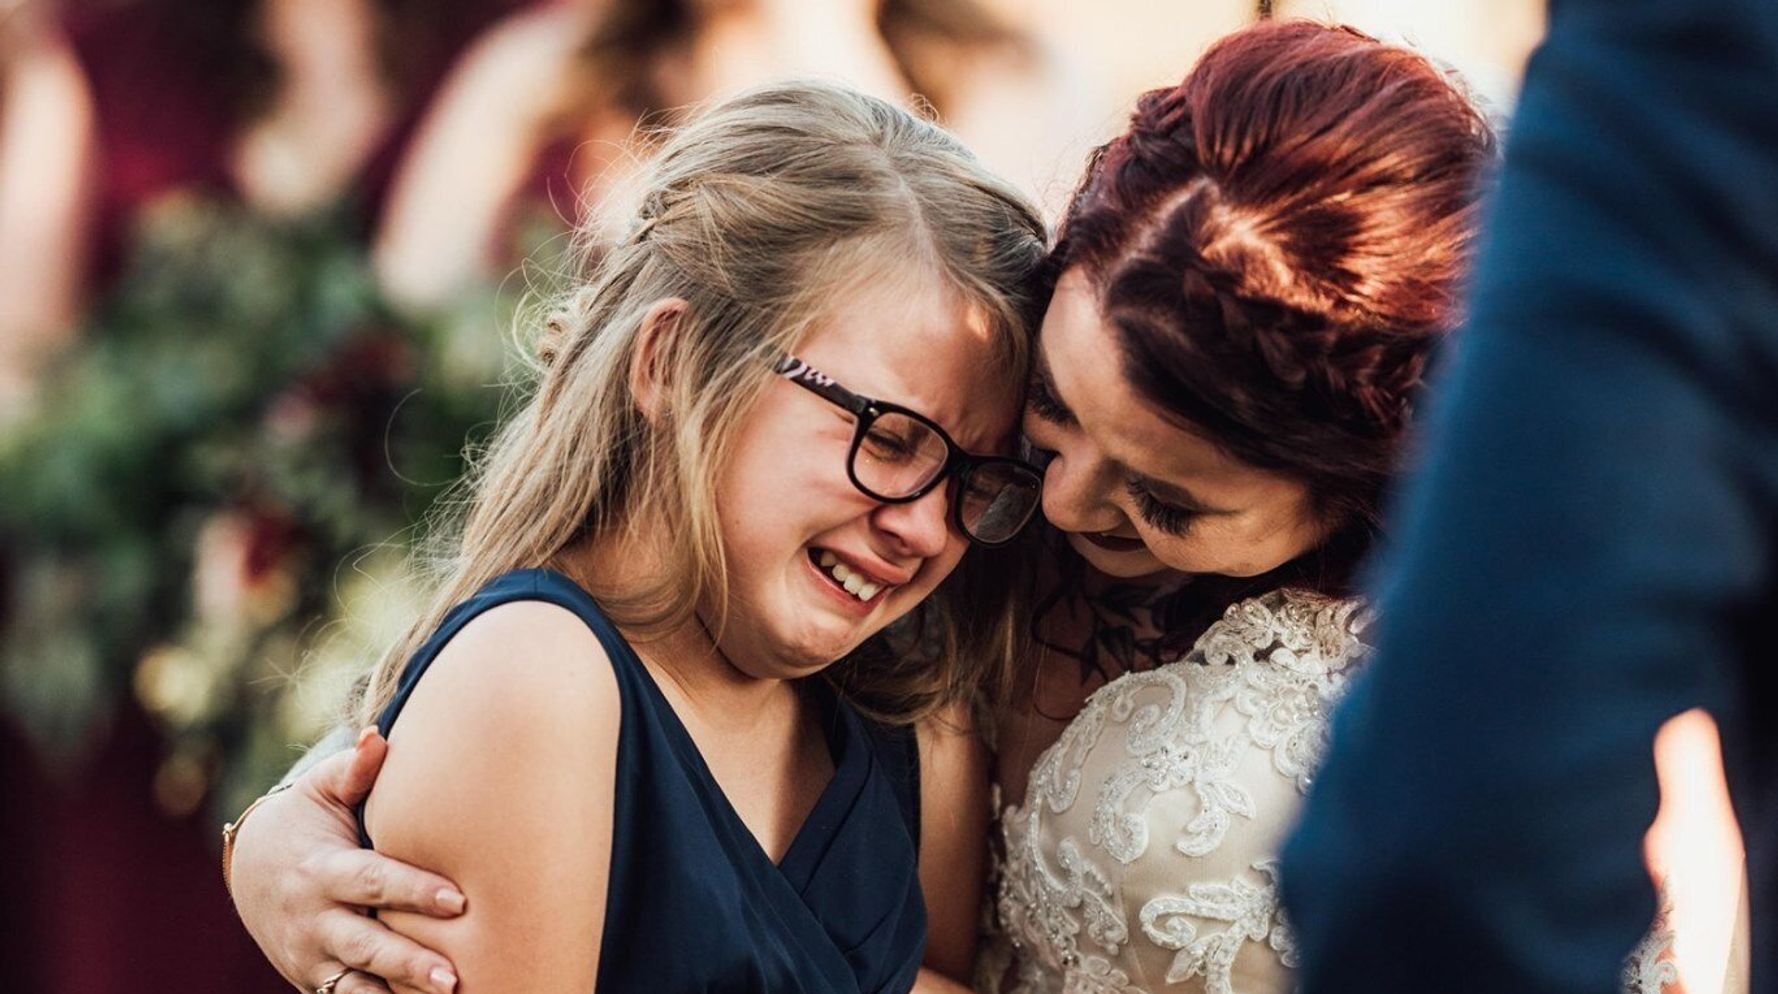 Groom Makes The Most Heartfelt Vows To His 9-Year-Old Stepdaughter